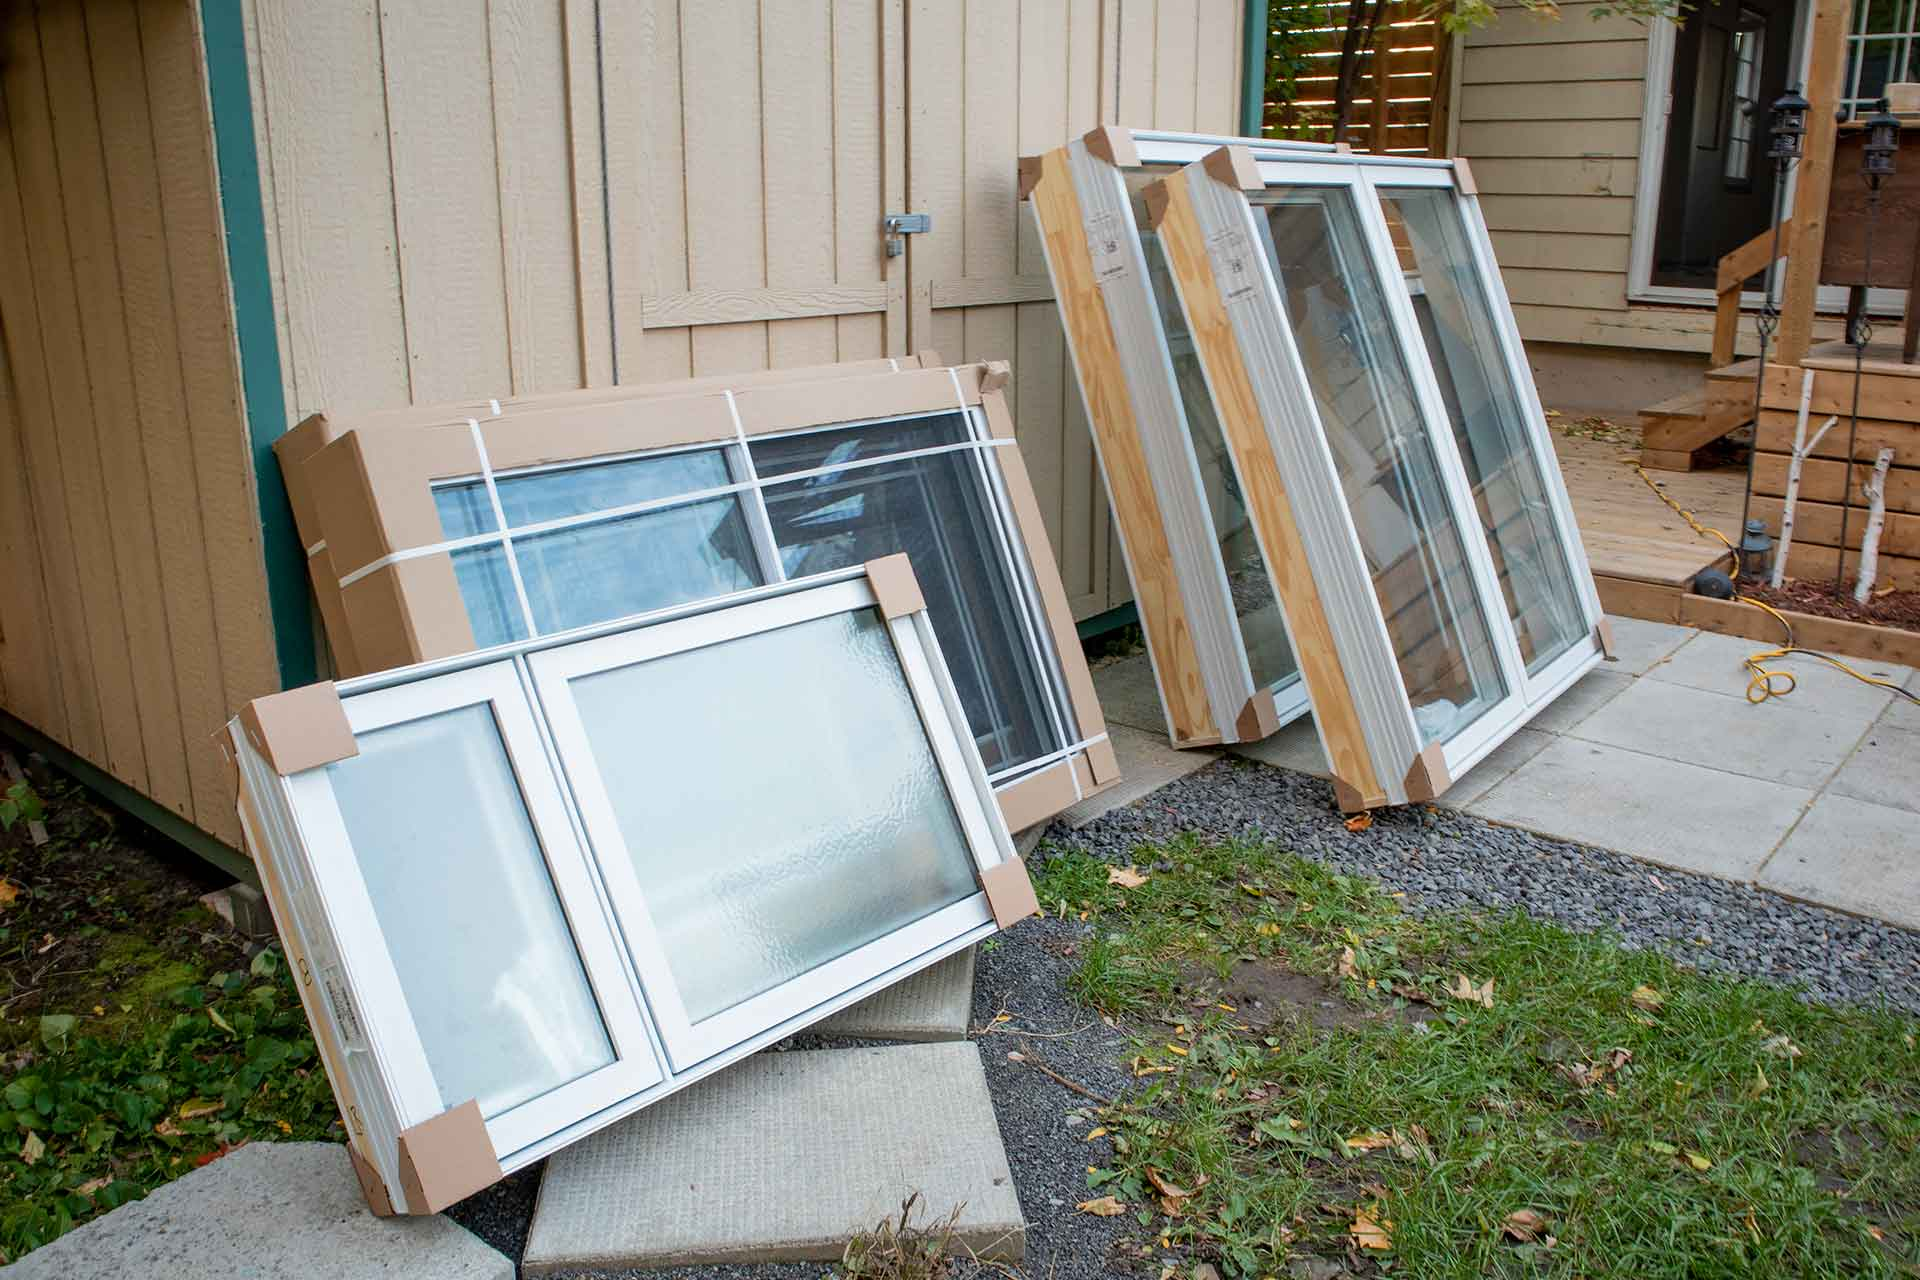 Replacement windows leaning up against a shed, awaiting installation.